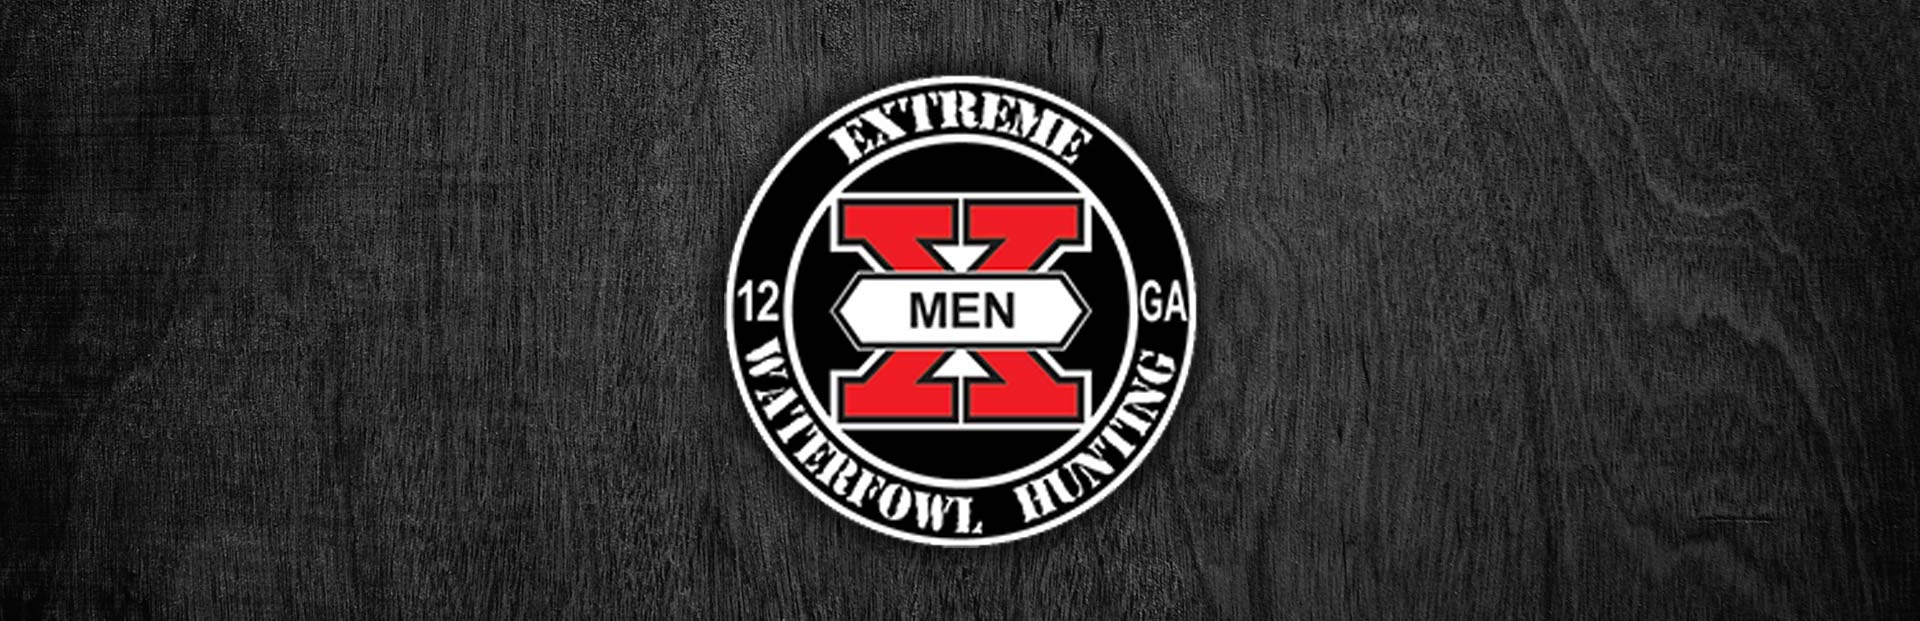 Link to Xmen Extreme Waterfowl Hunting